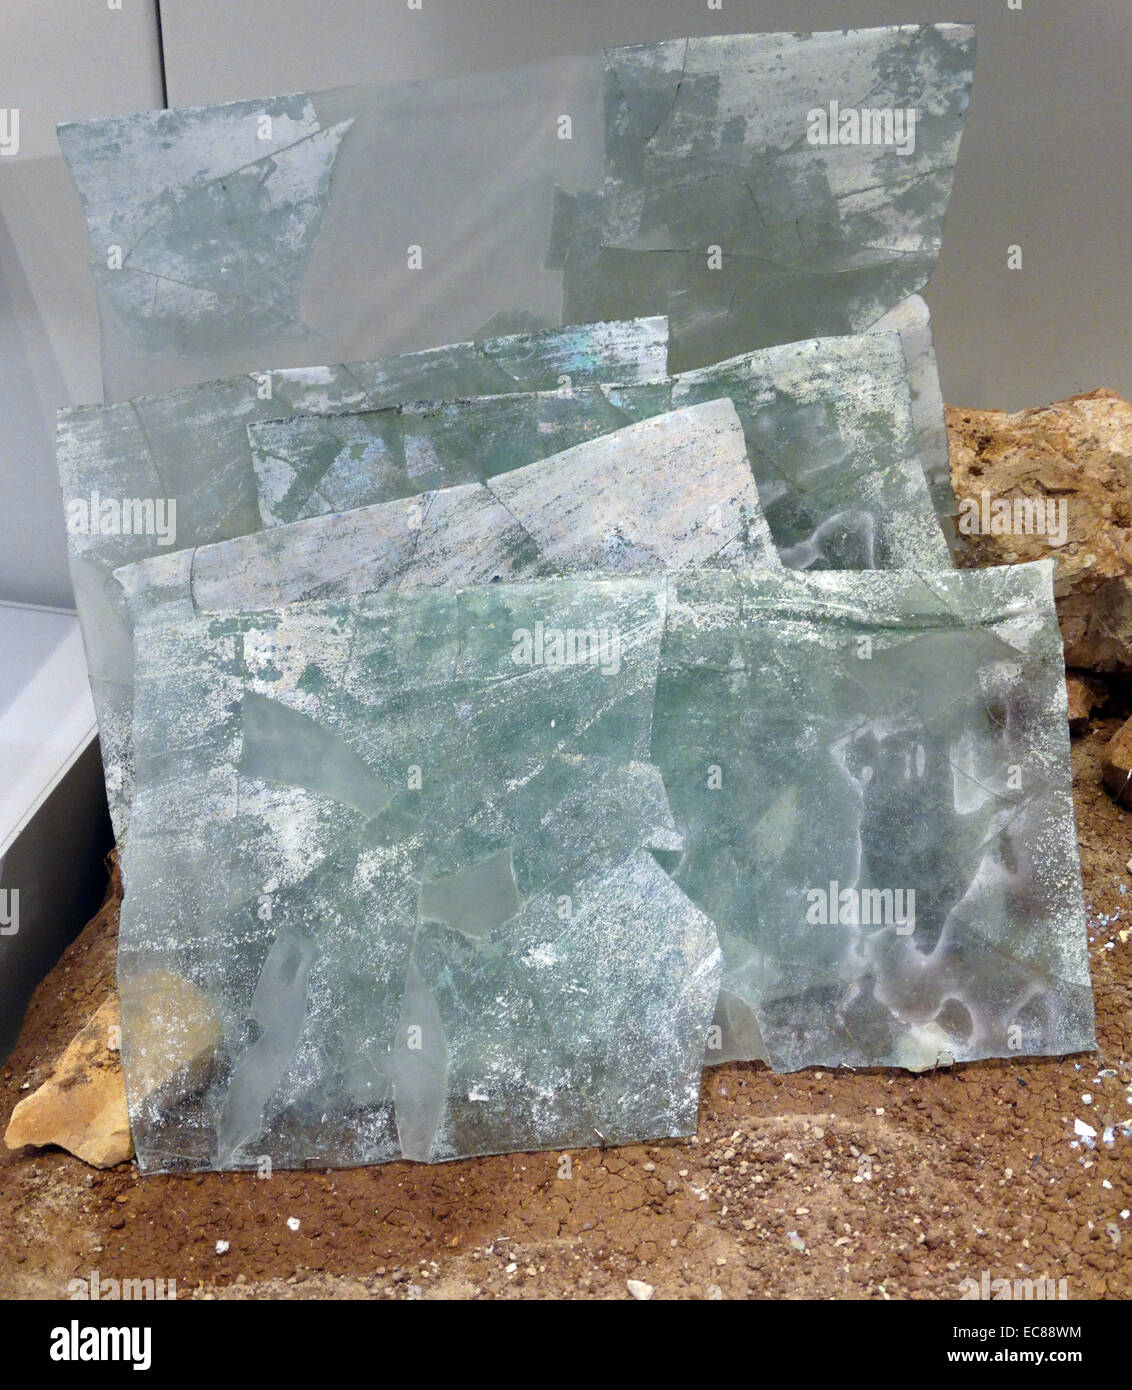 Pile of stacked window panes, found in a glass studio in Beth Shean. From the 6th-7th century. - Stock Image